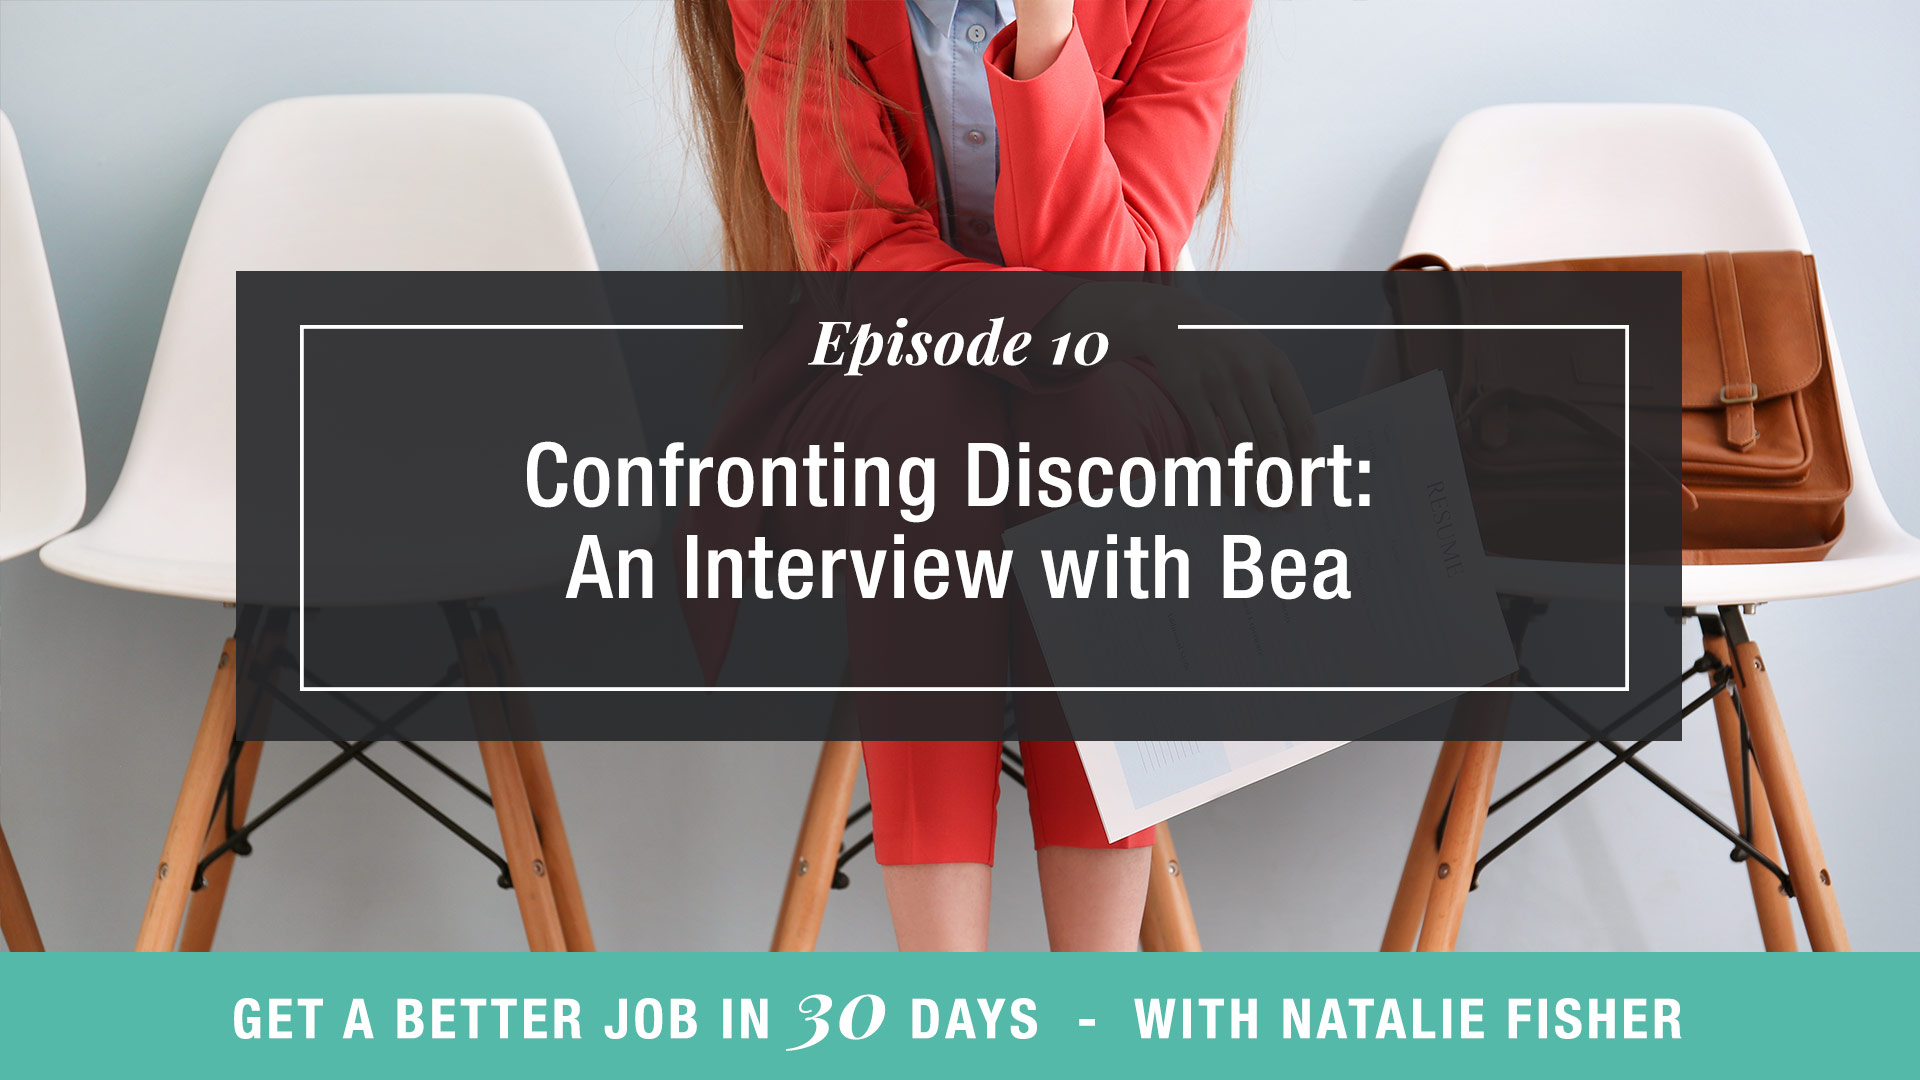 Confronting Discomfort: An Interview with Bea